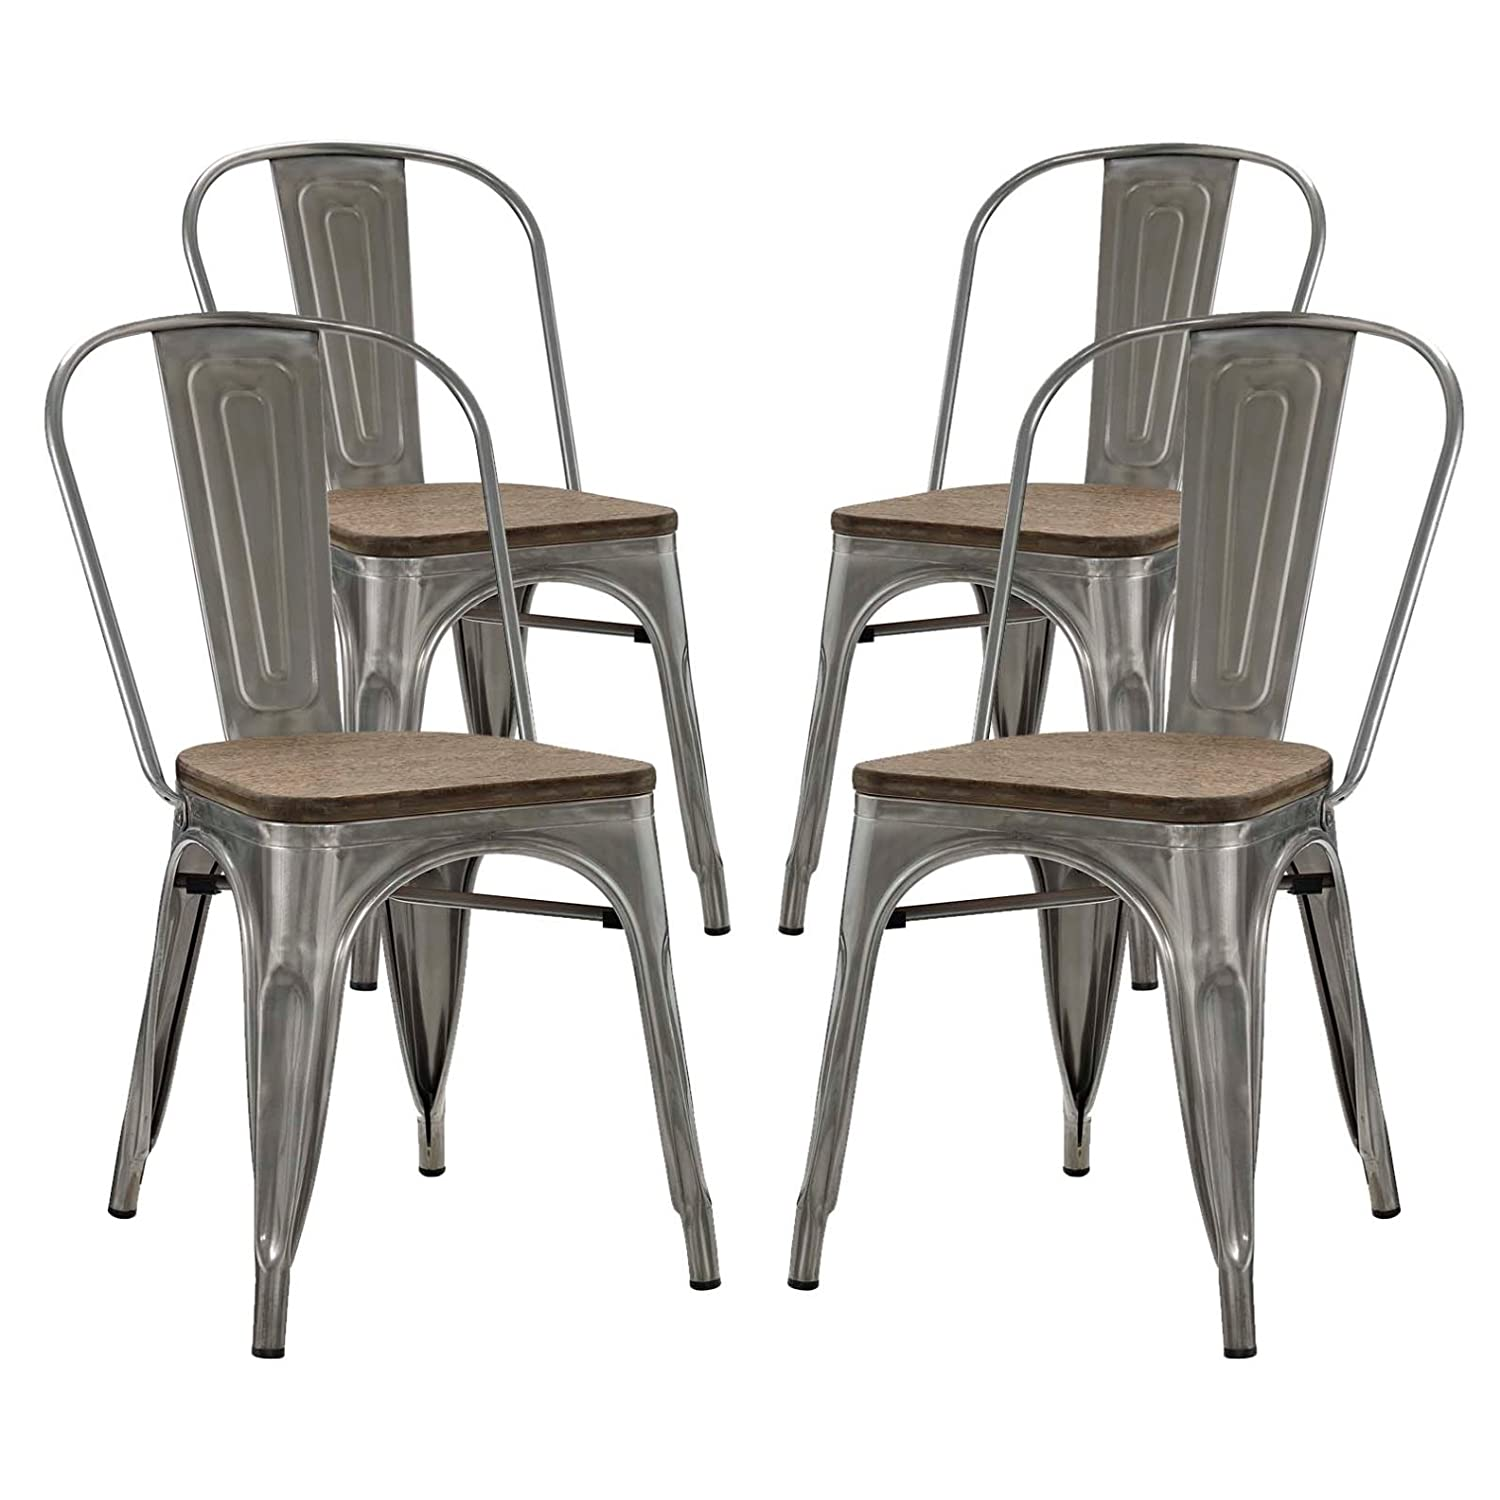 Antique Dining Chairs >> Amazon Com Modern Contemporary Industrial Distressed Antique